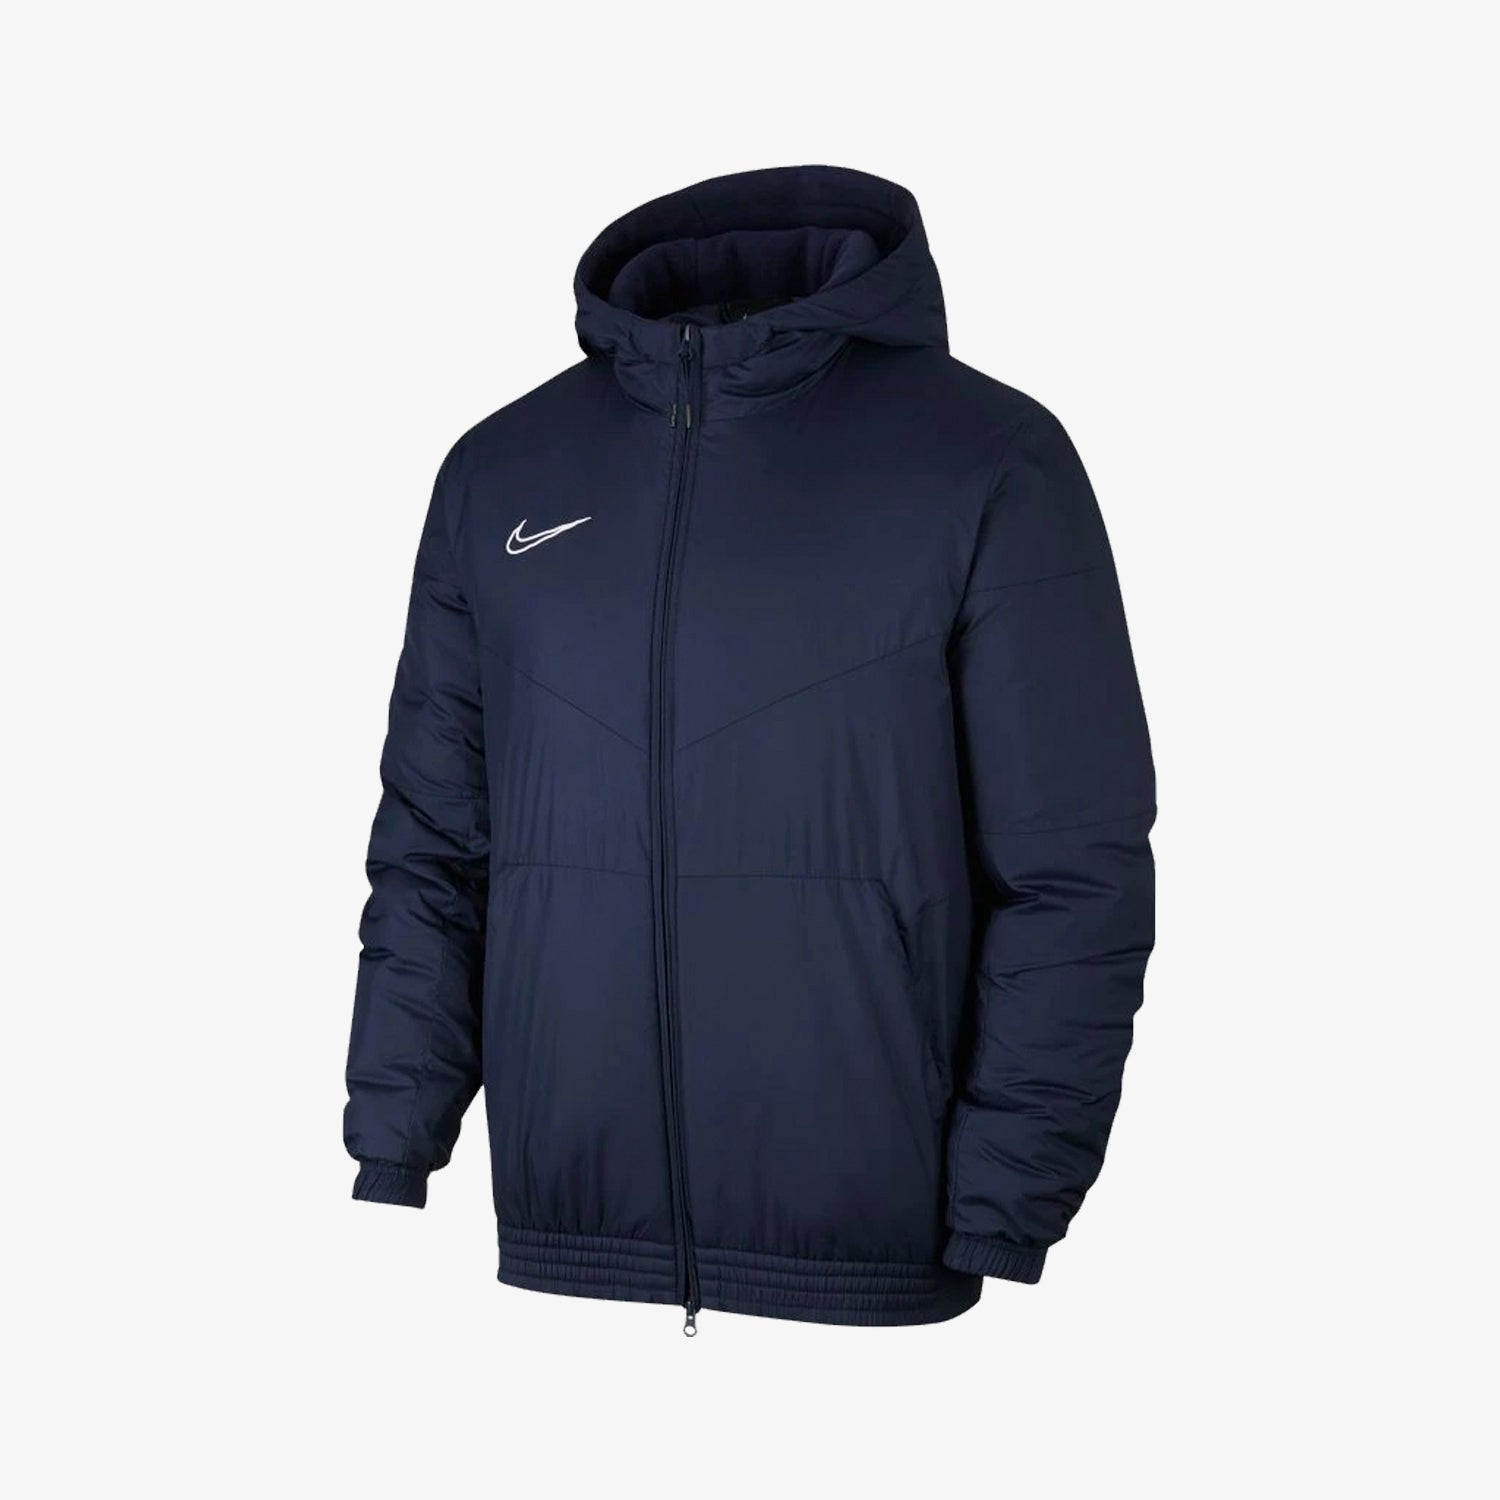 Men's Academy 19 Stadium Jacket - Navy Blue